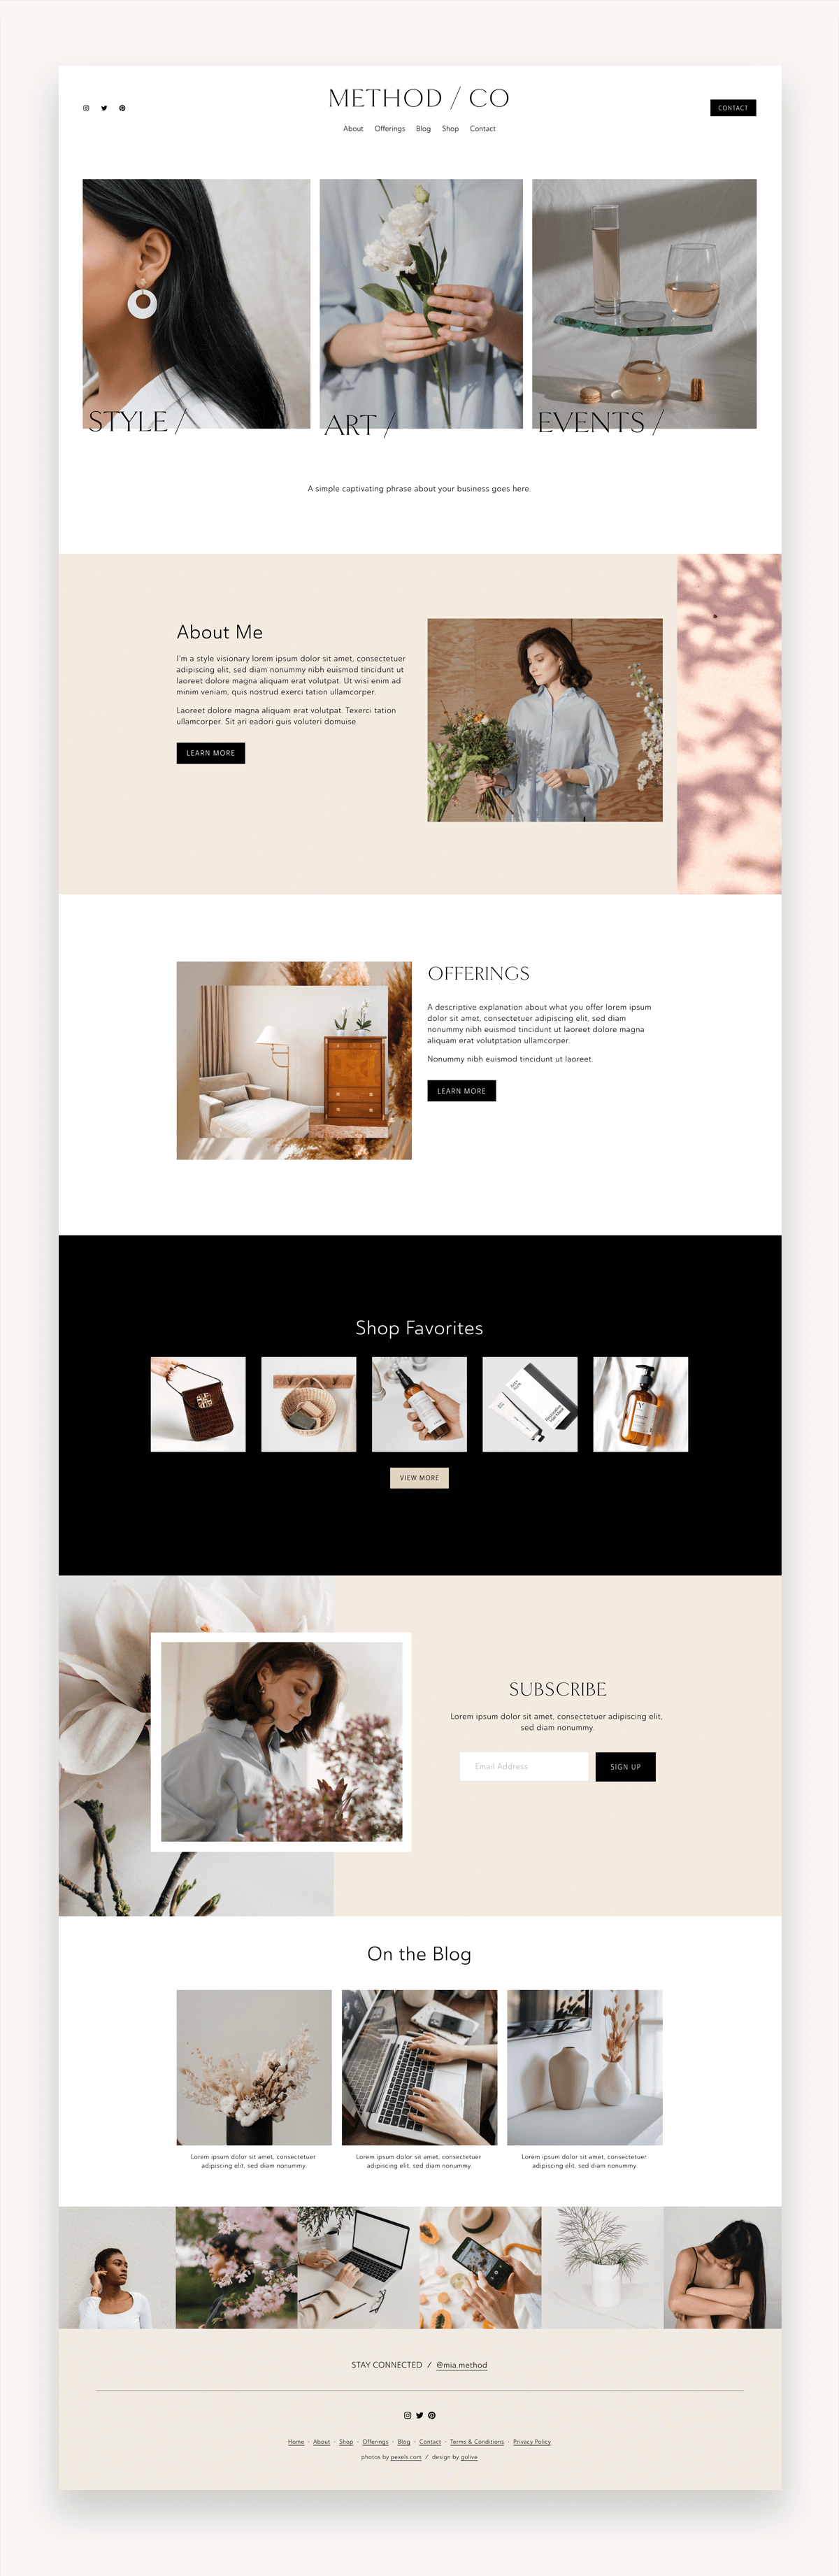 Method Squarespace Template